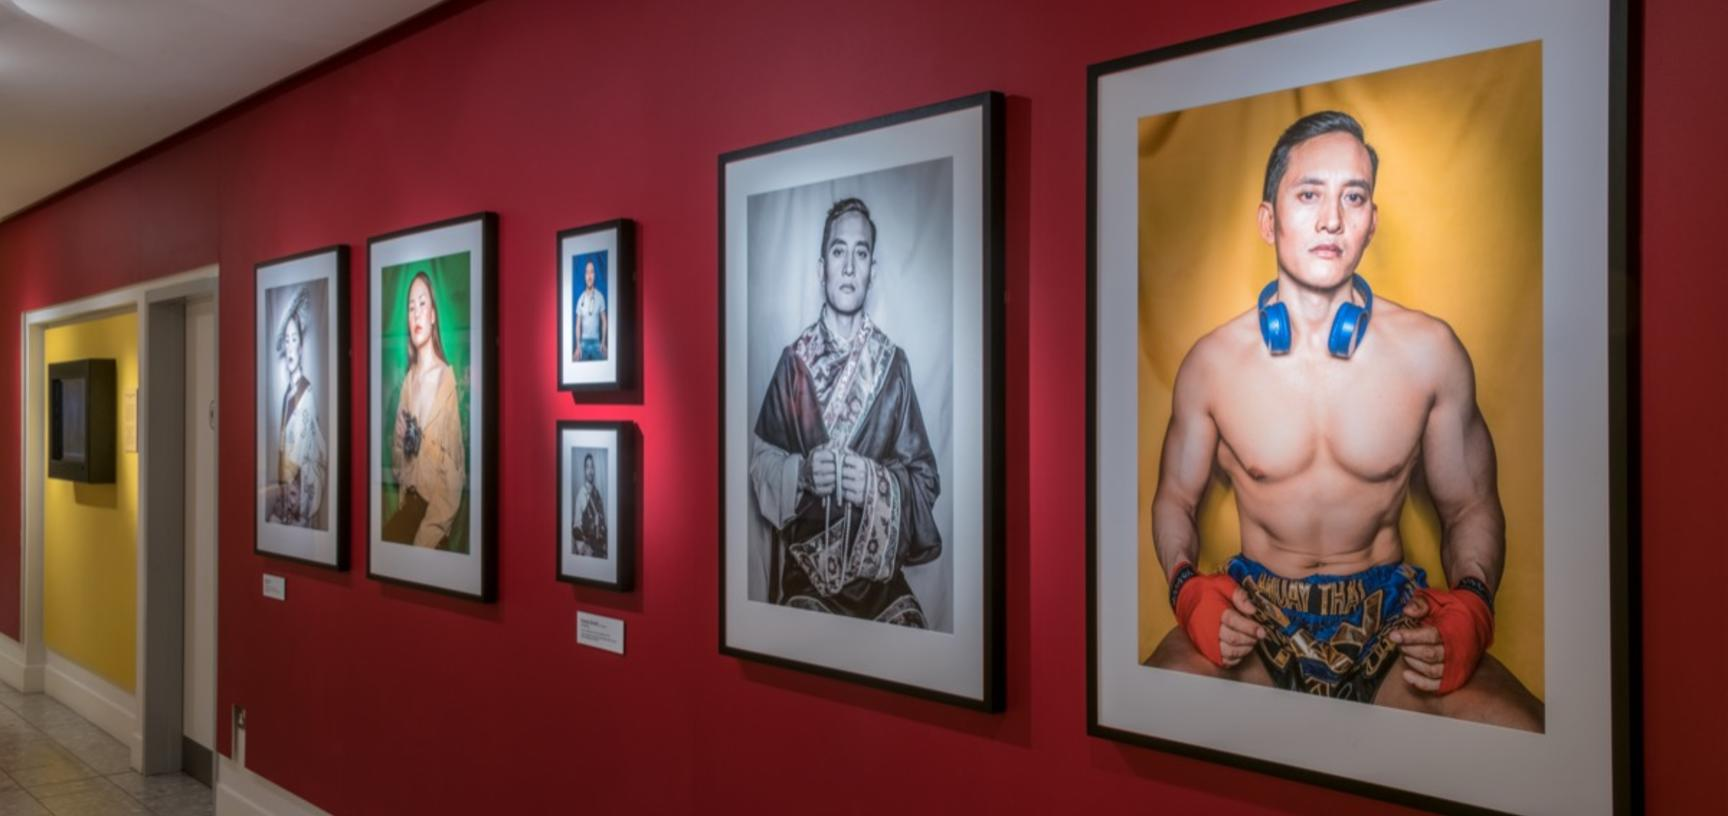 'Performing Tibetan Identities: Photographic Portraits by Nyema Droma', Pitt Rivers Museum, University of Oxford, 13 October 2018 to 30 May 2019. (Copyright Pitt Rivers Museum, University of Oxford)